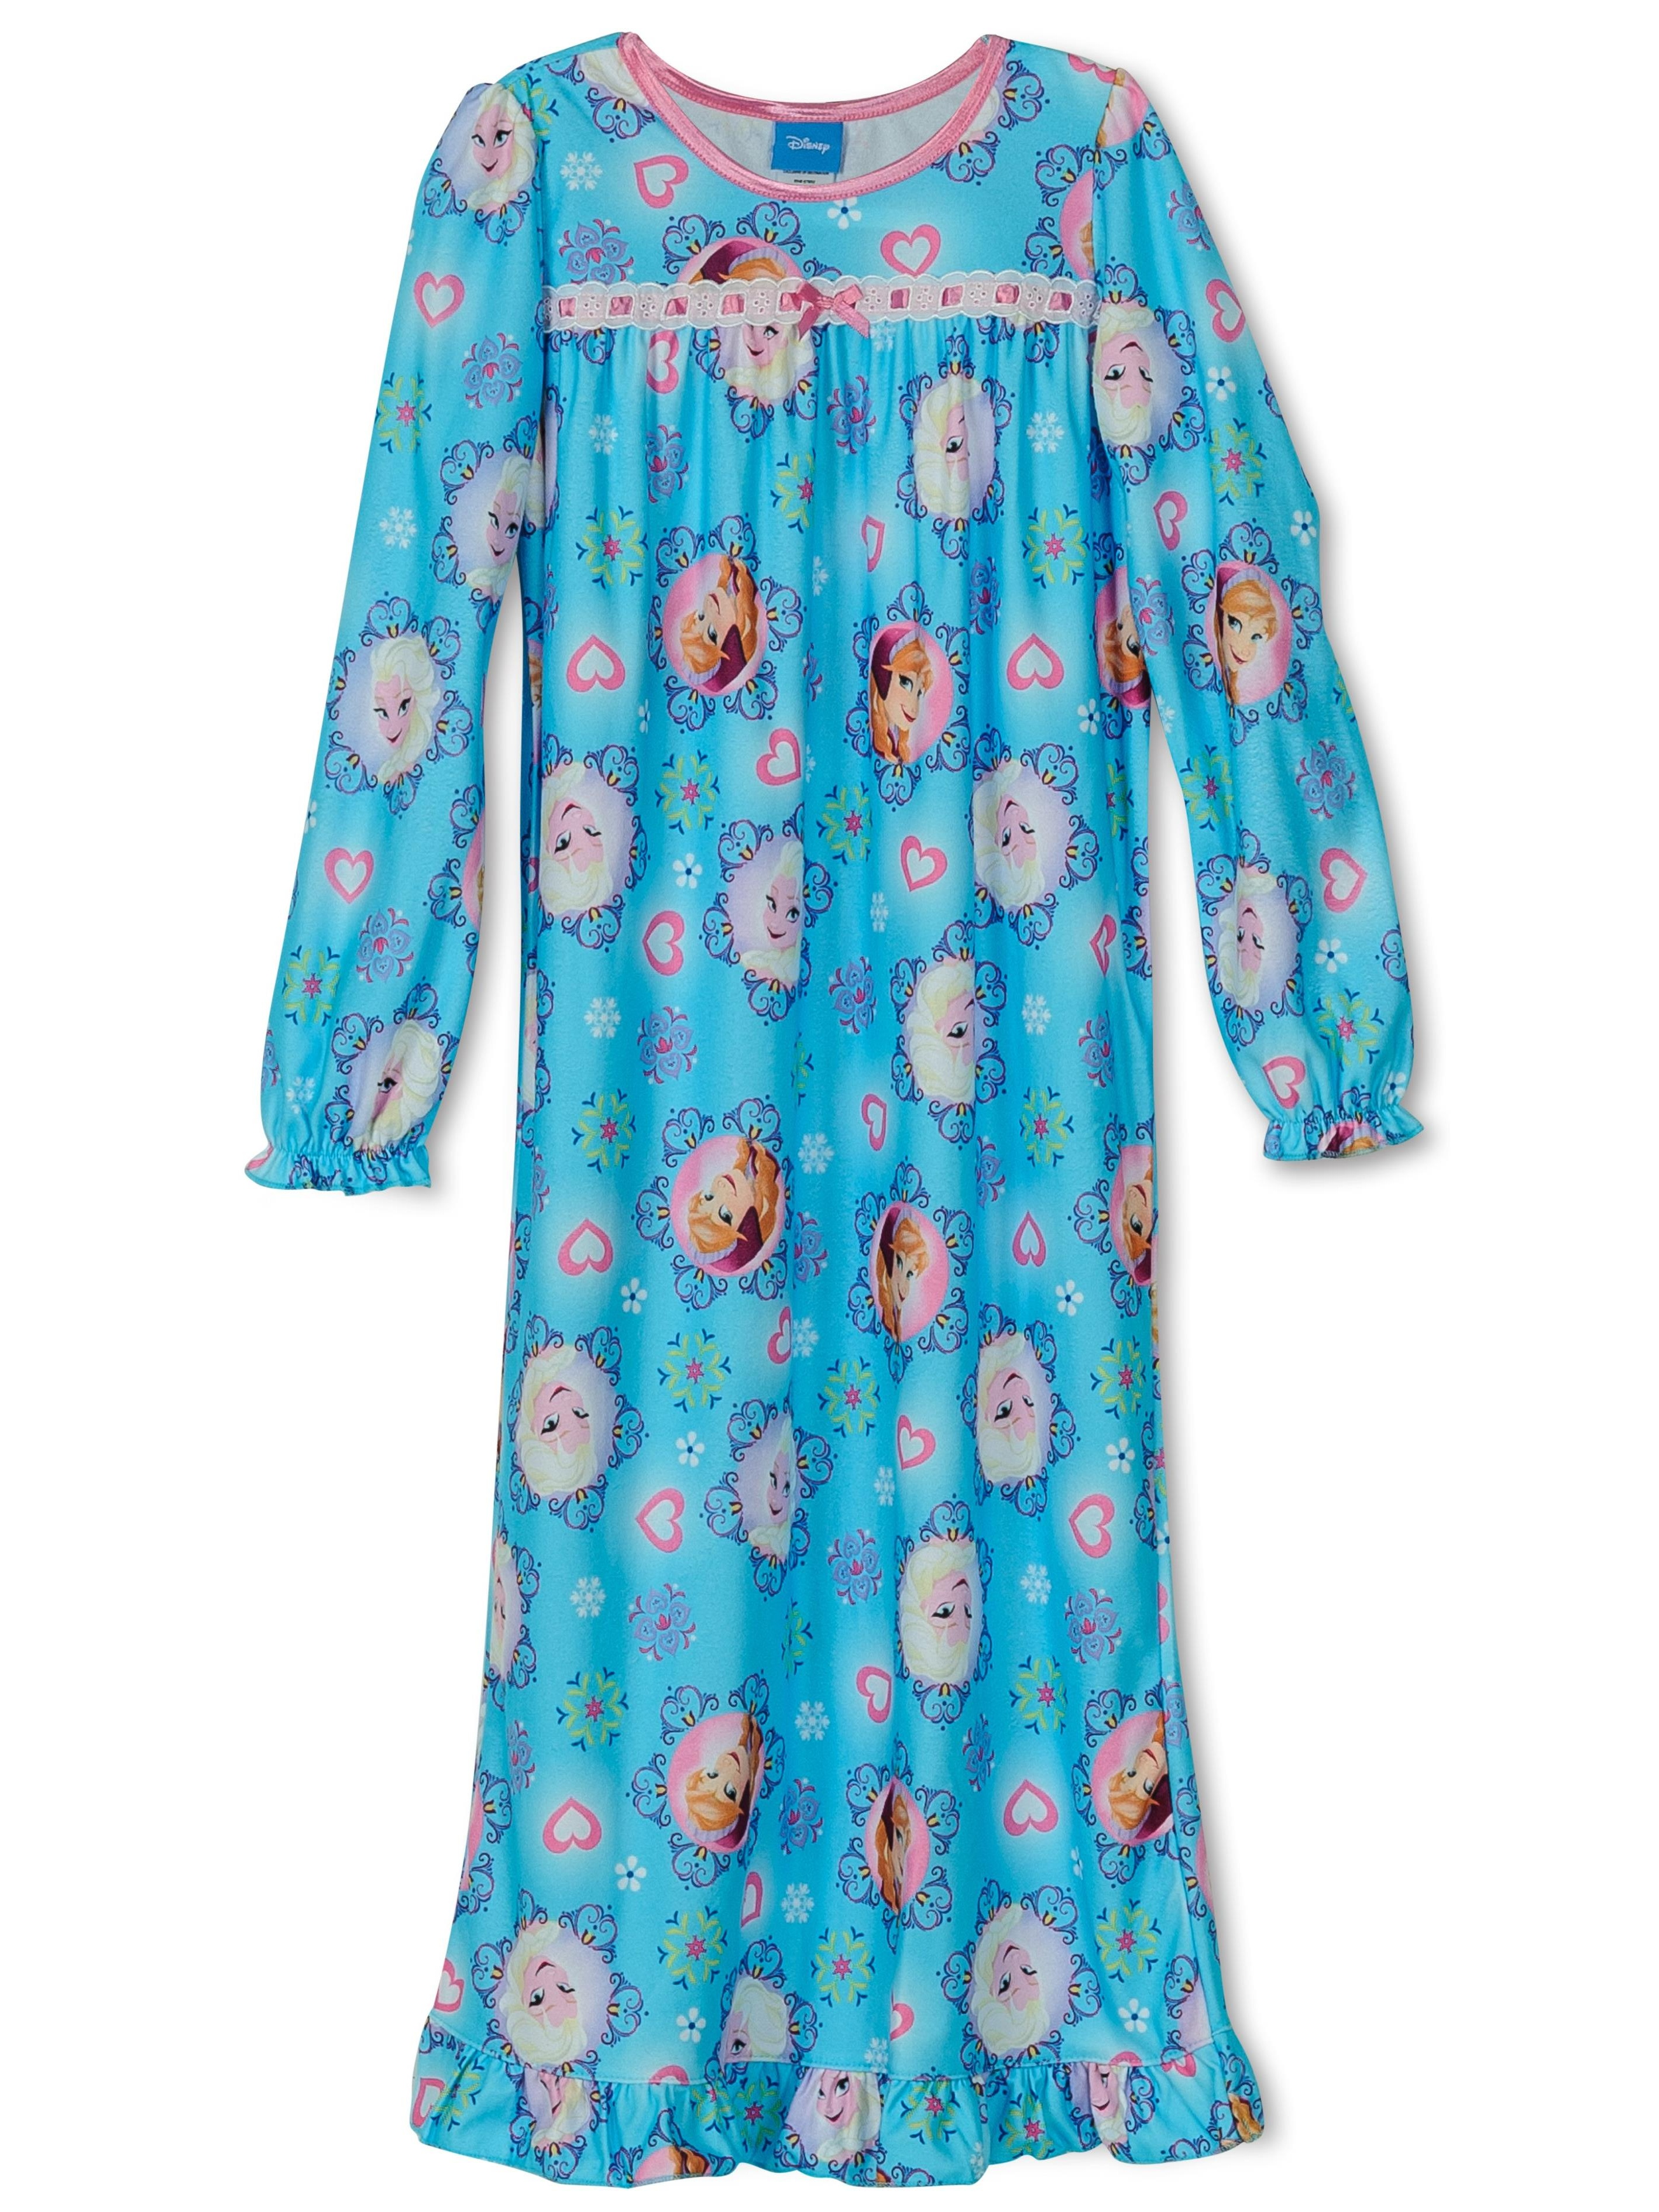 Girls' Long Sleeve Nightgown Pajamas, Sizes 2-16